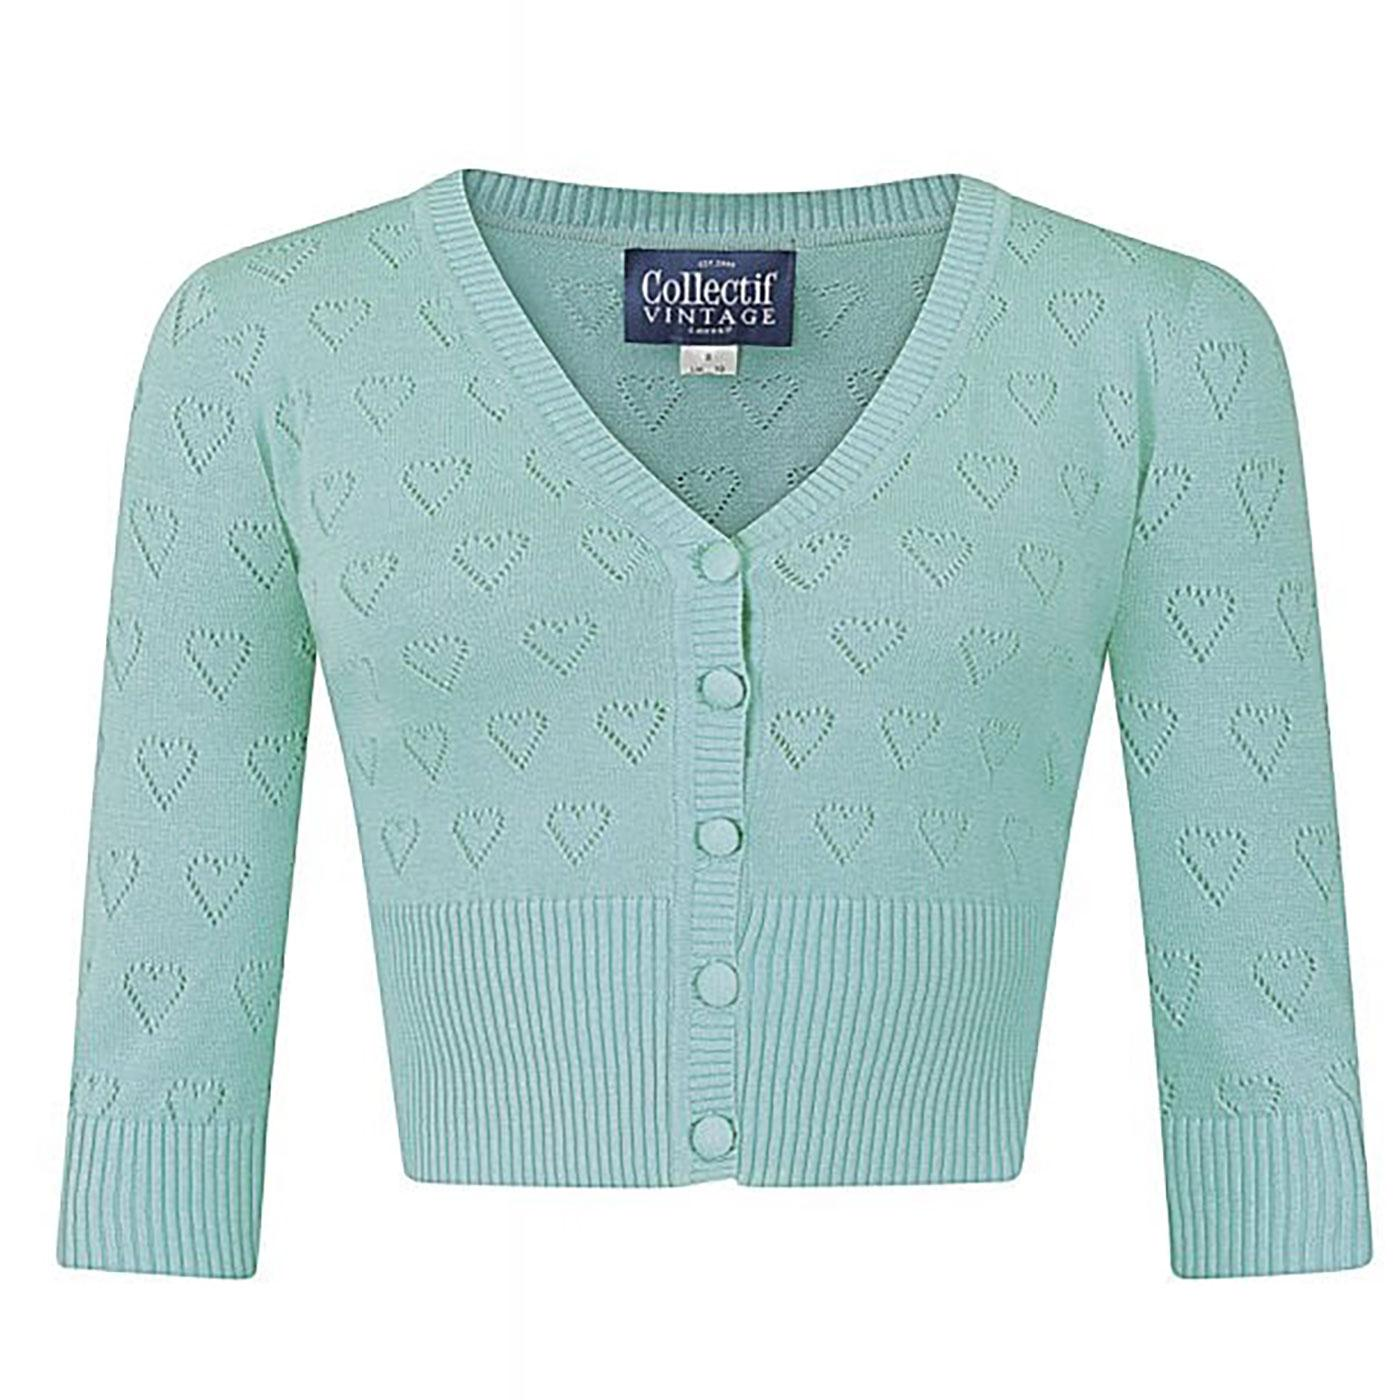 Evie COLLECTIF Retro 50s Heart Knit Cardigan Green